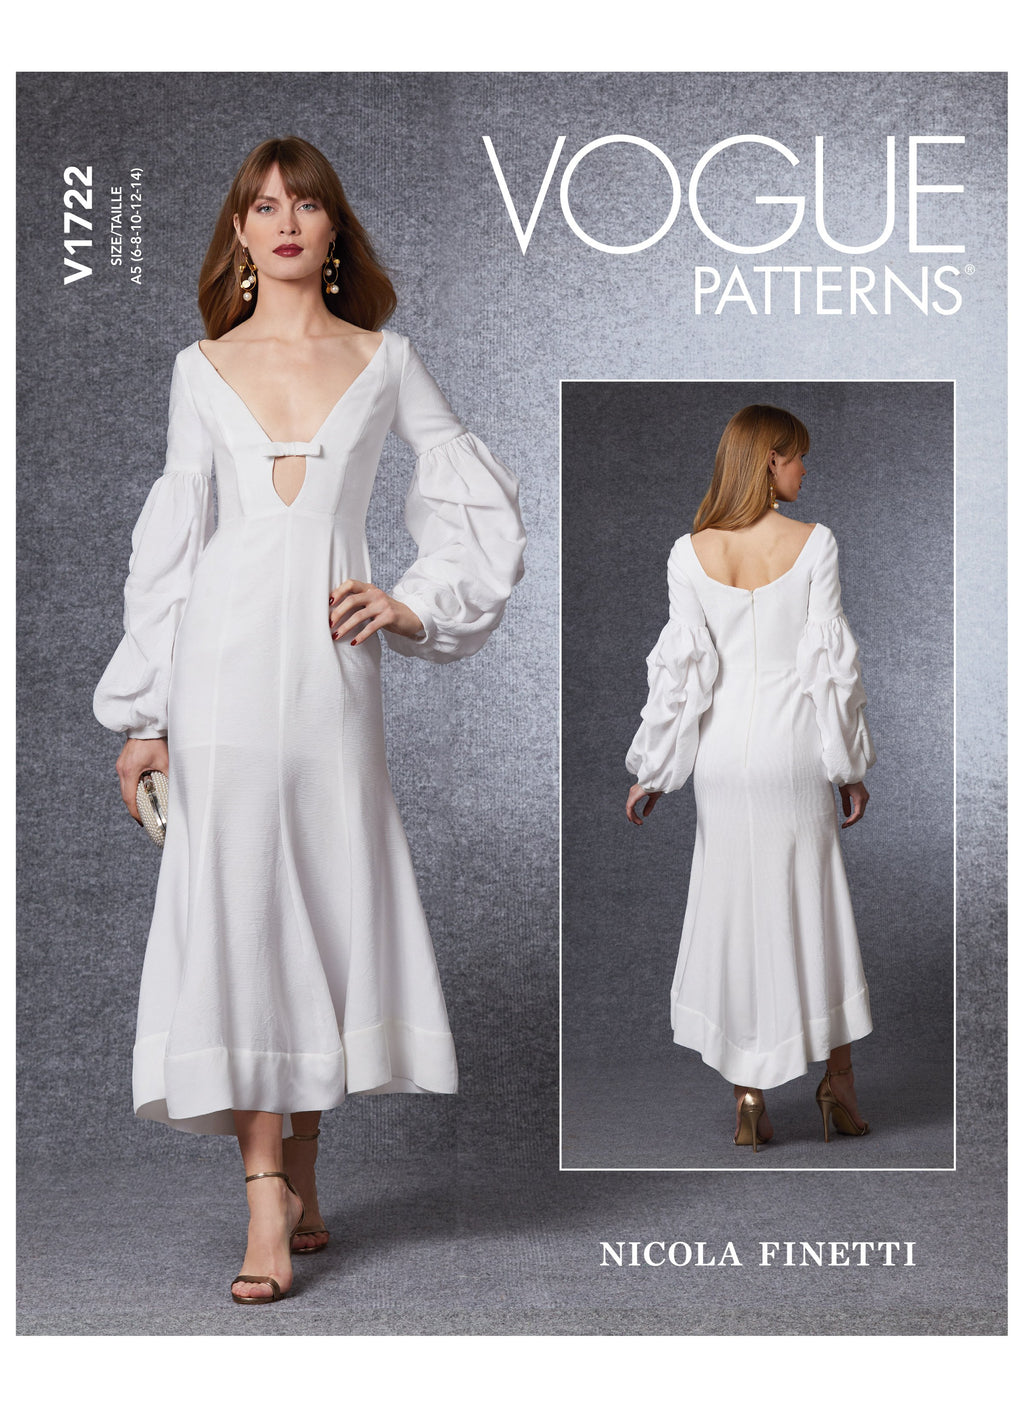 Vogue sewing pattern 1722 Special Occasion Dress | Nicola Finetti from Jaycotts Sewing Supplies